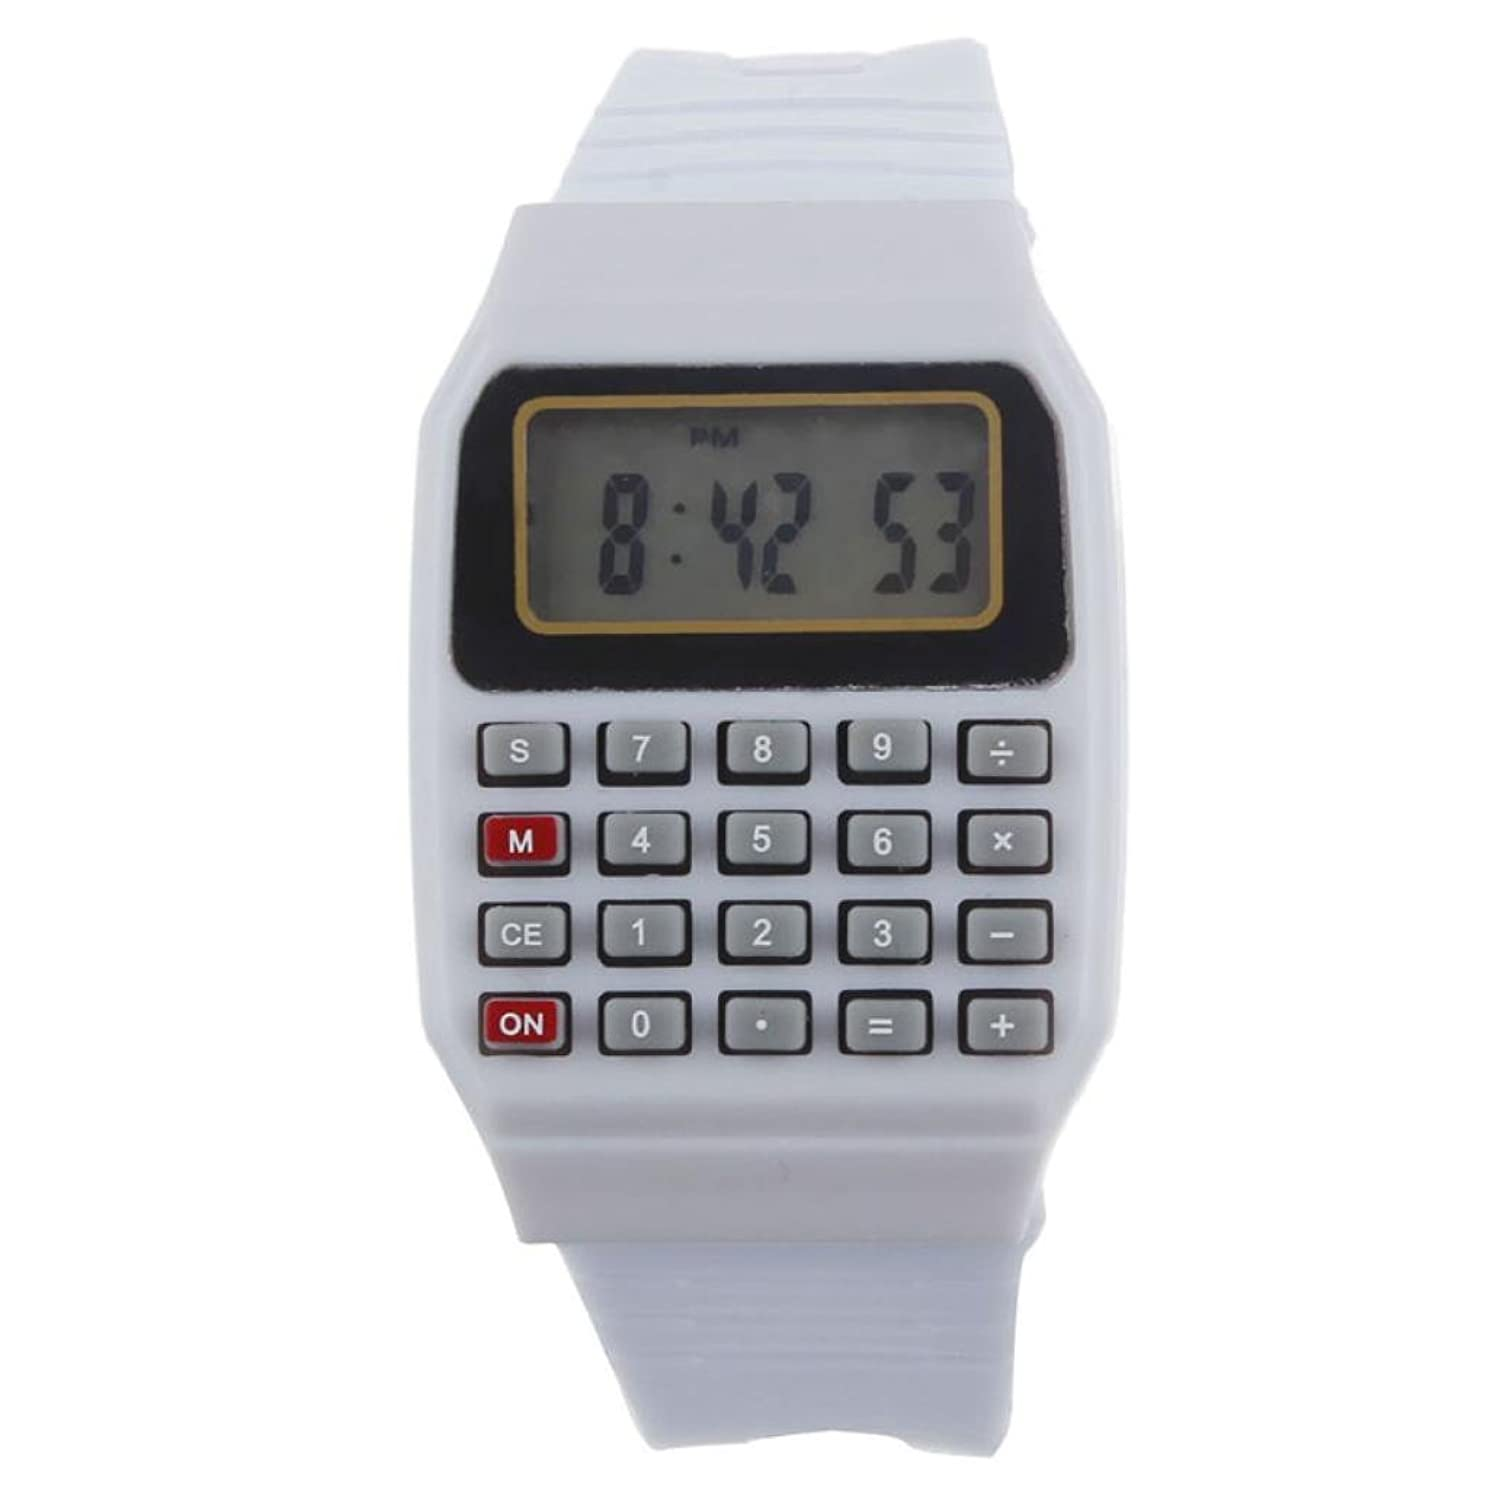 SMTSMT Children Multi-Purpose Time Wrist Calculator Watch- White